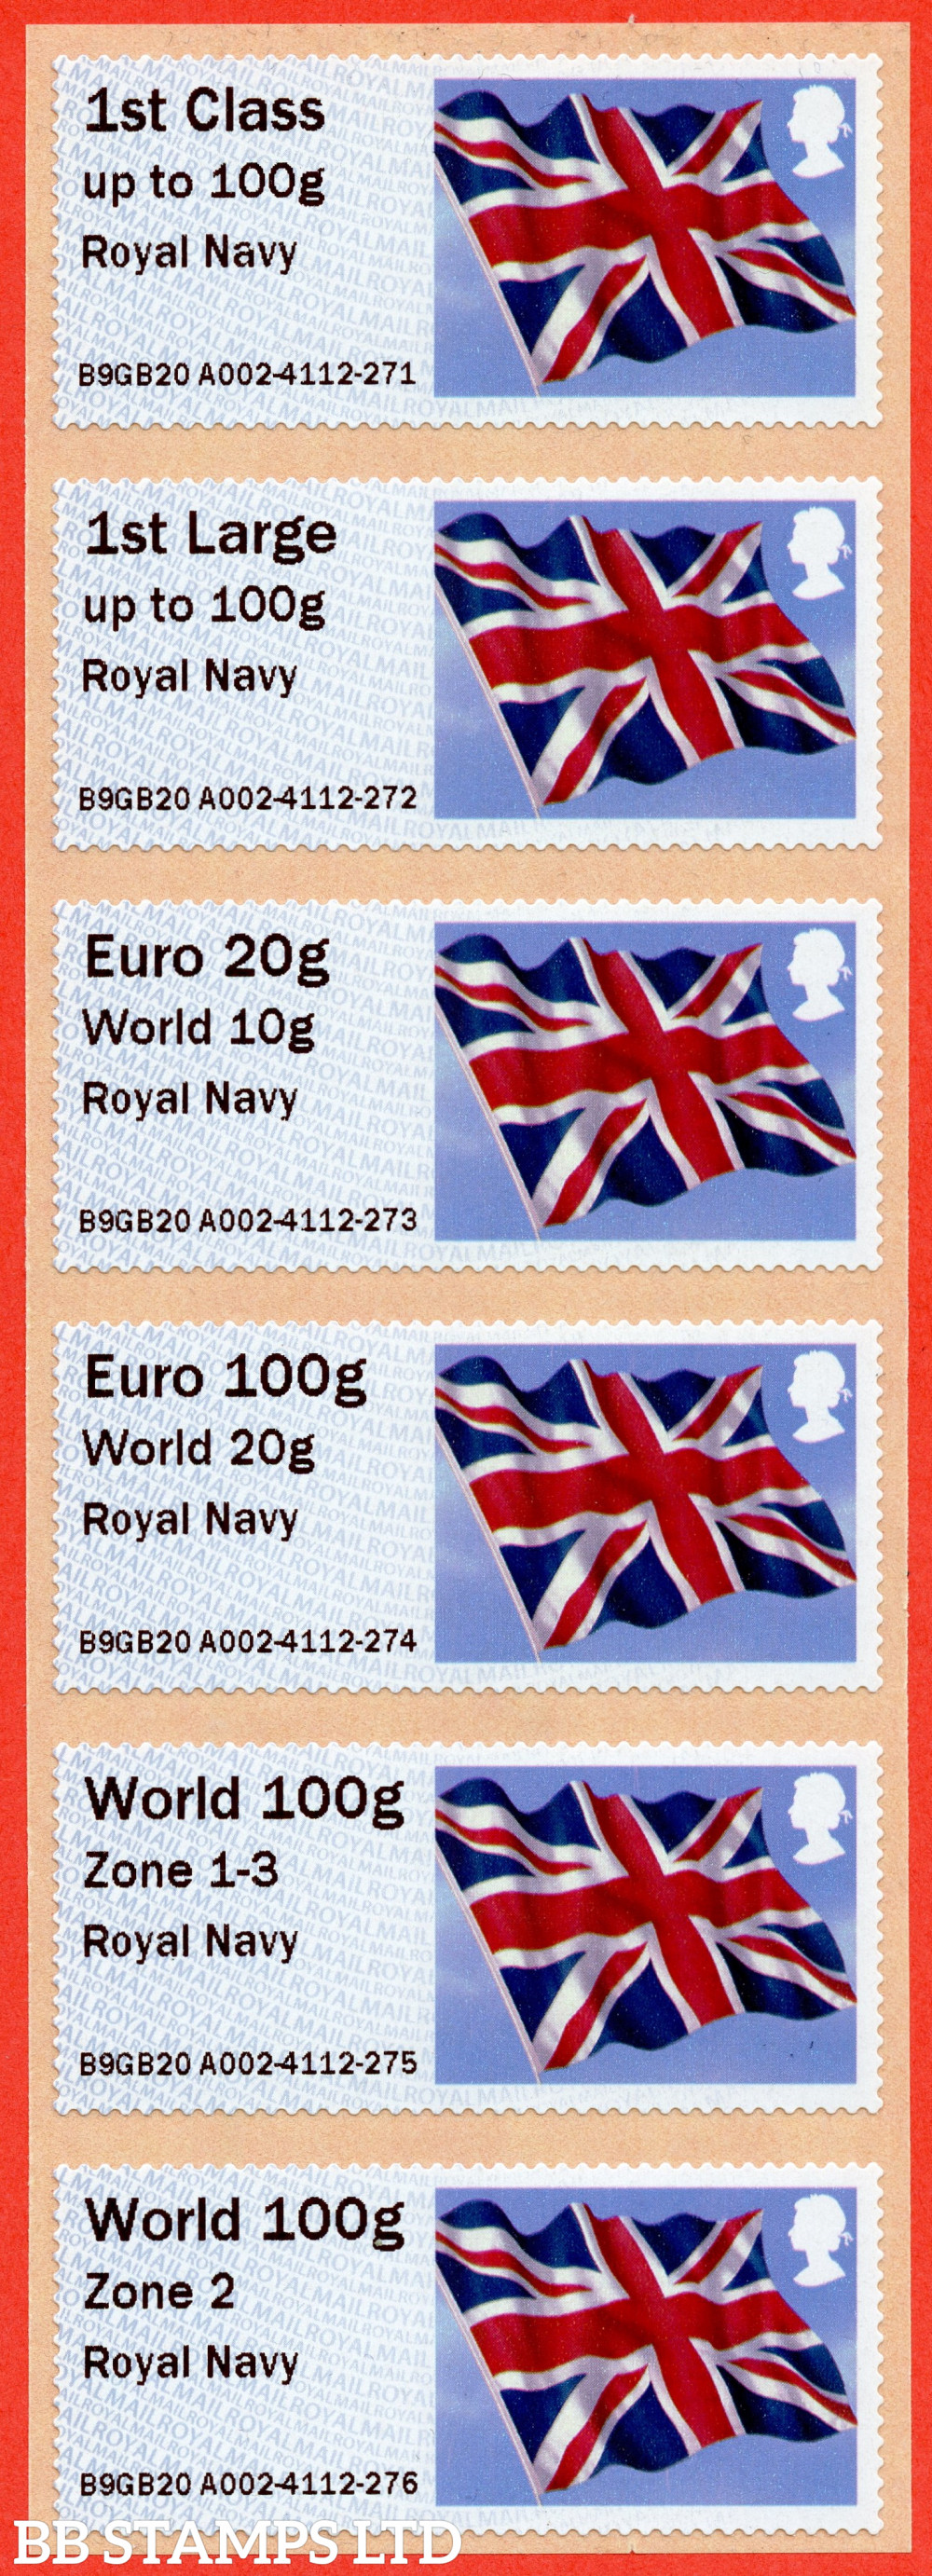 Union Flag: Royal Navy, set of 6 (TIIIA) with 01/09/20 new overseas stamps: 1st/1stL/Euro 20g World 10g, and 3 new values: Euro 100g World 20g, World 100g Zone 1-3 [with hyphen] and World Zone 2: NO YEAR CODE (BK30 P18)